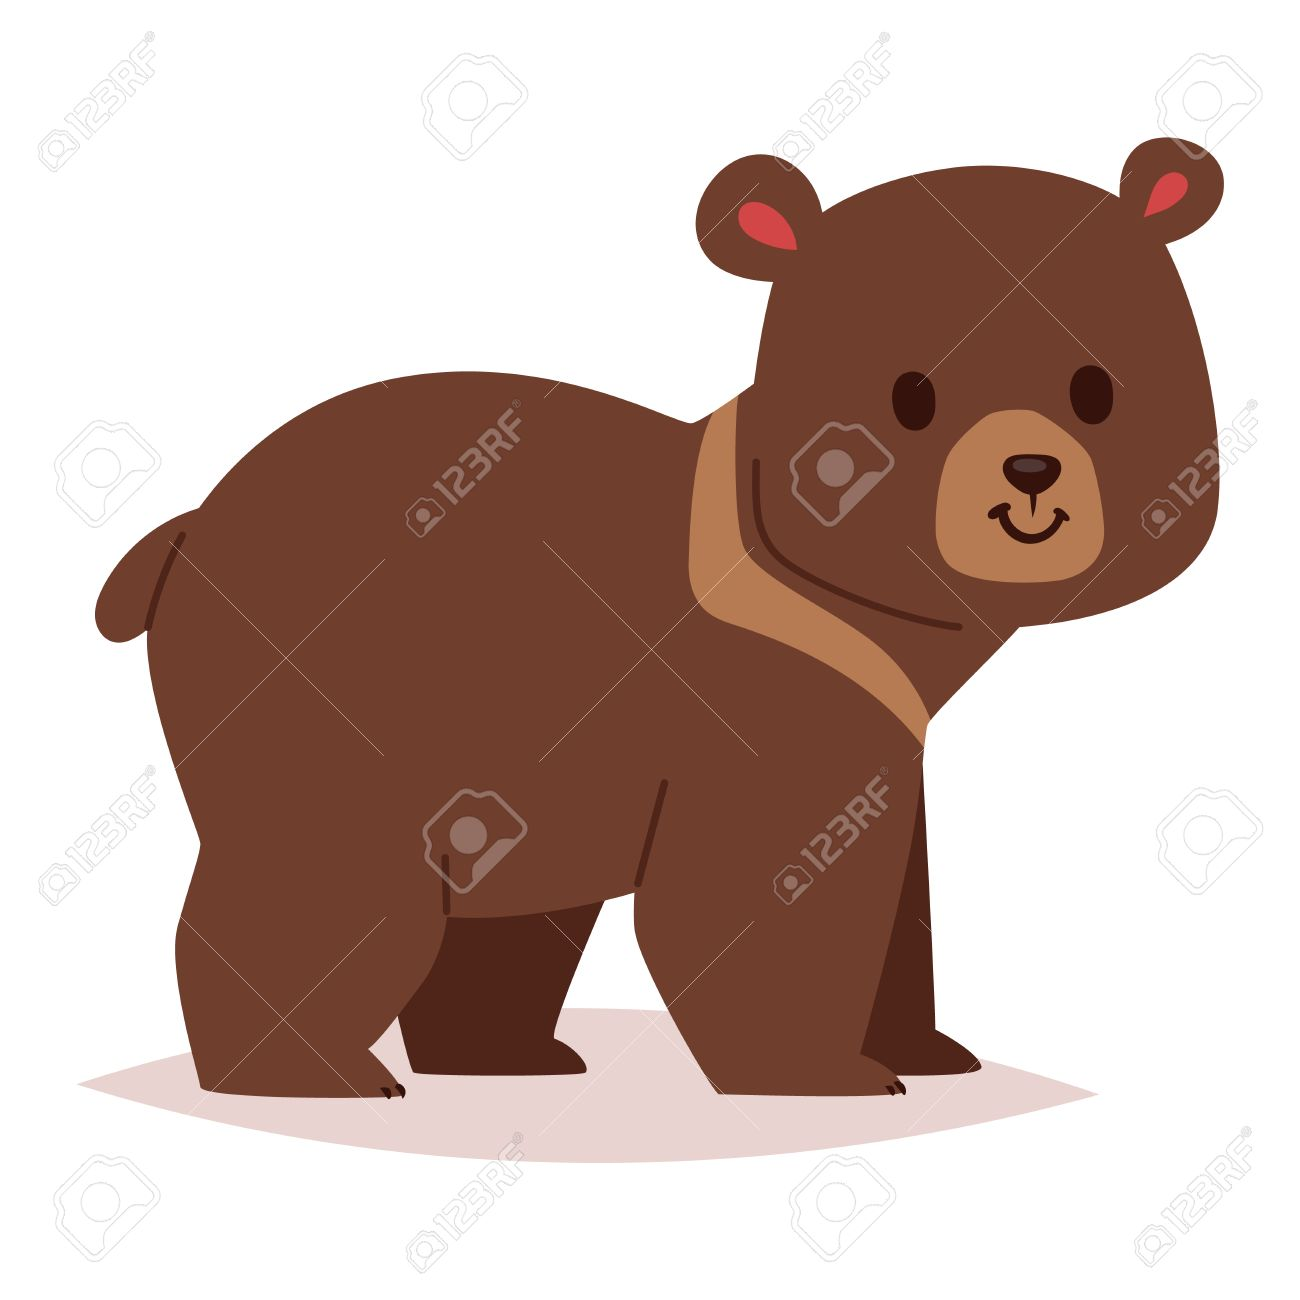 1300x1300 Cute Cartoon Bear Emotions Icon. Brown Character Happy Smiling